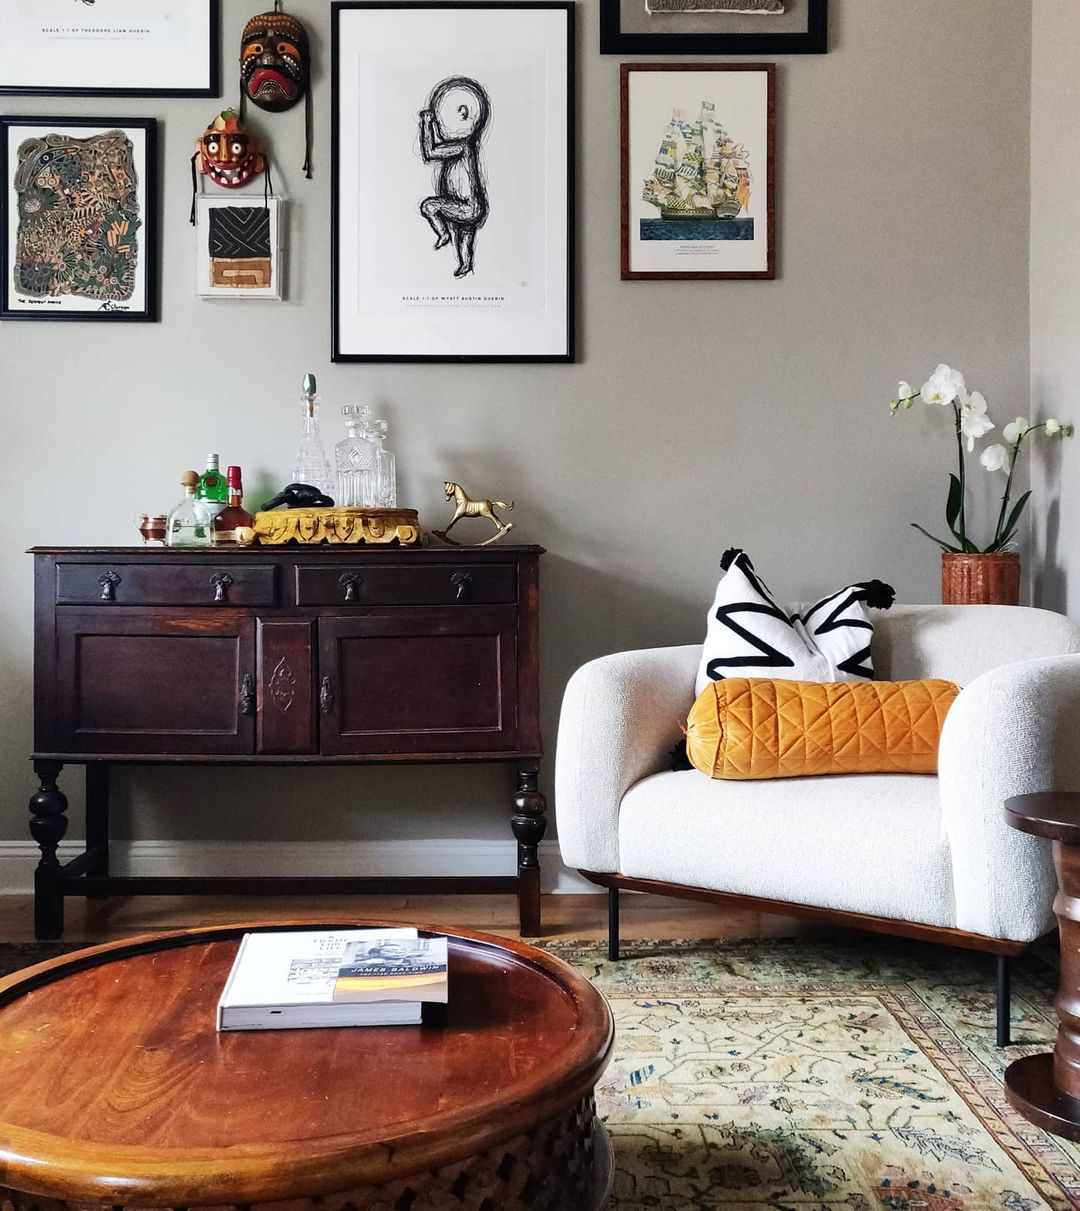 Room with antique pieces of furniture